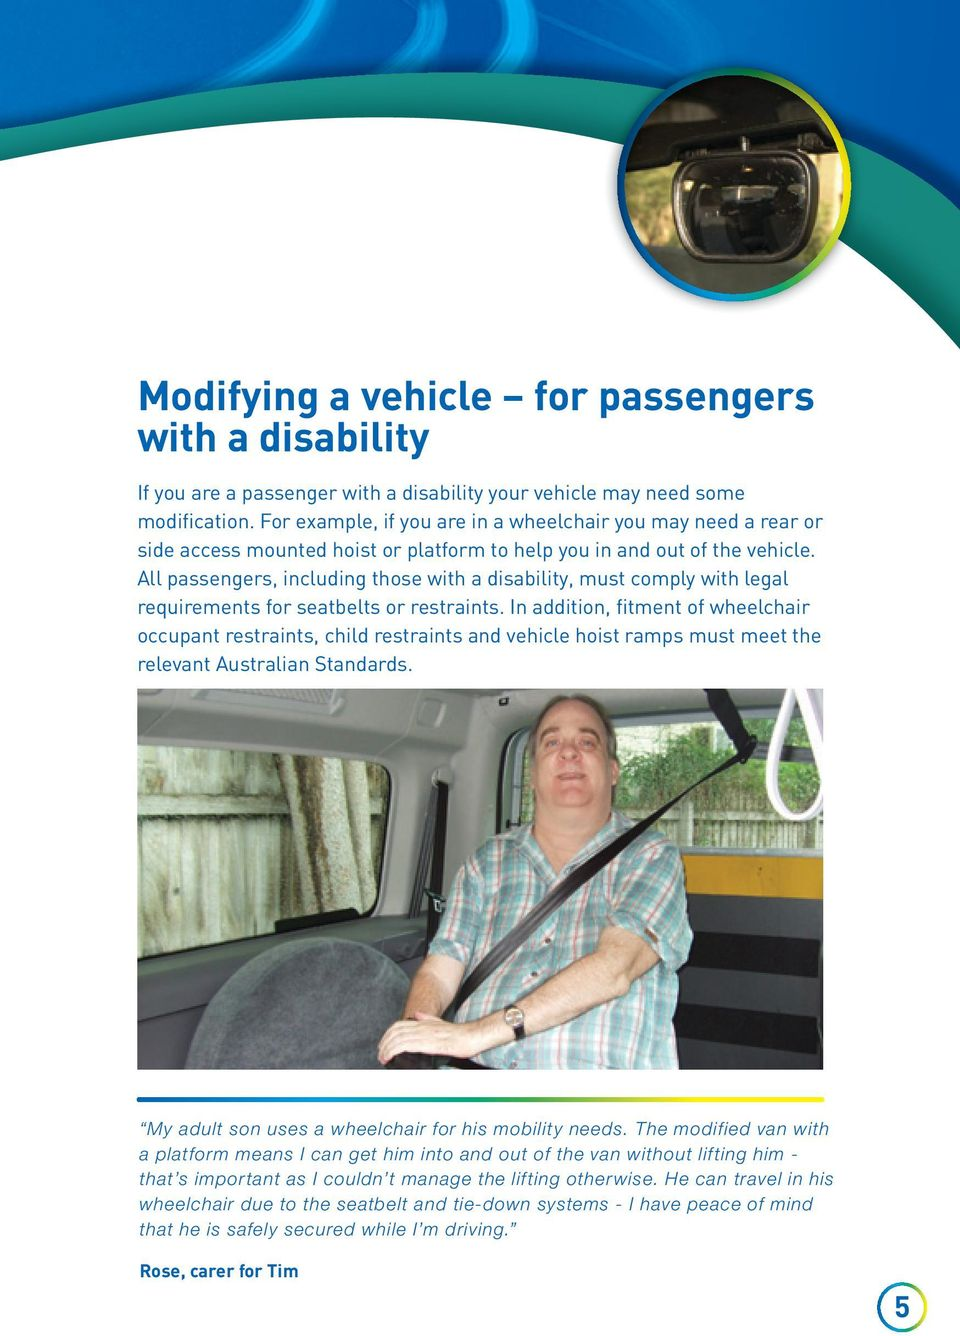 All passengers, including those with a disability, must comply with legal requirements for seatbelts or restraints.